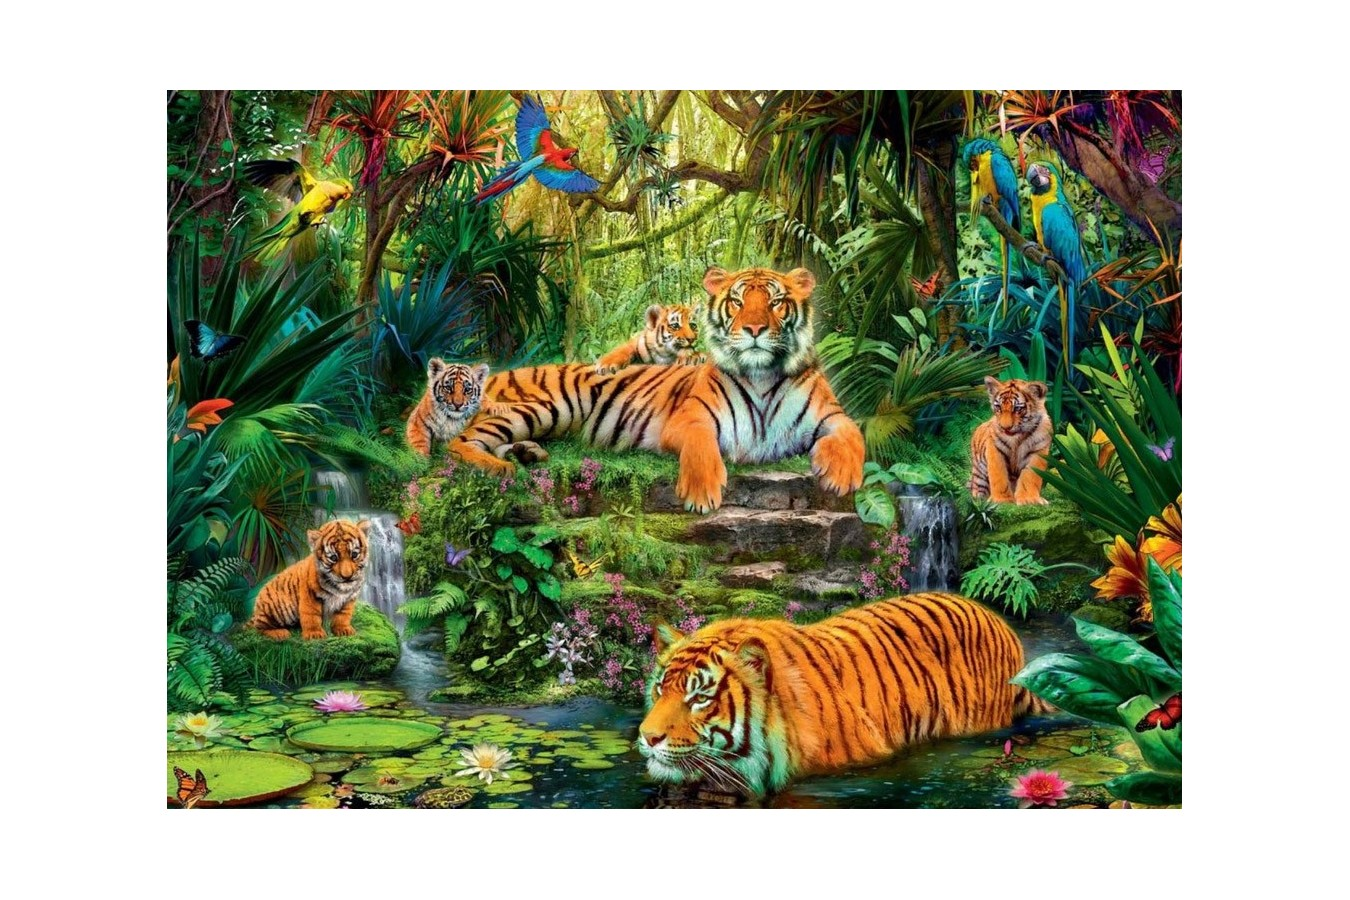 Puzzle Jumbo - Family of tigers at the Oasi, 1.000 piese (17245) imagine